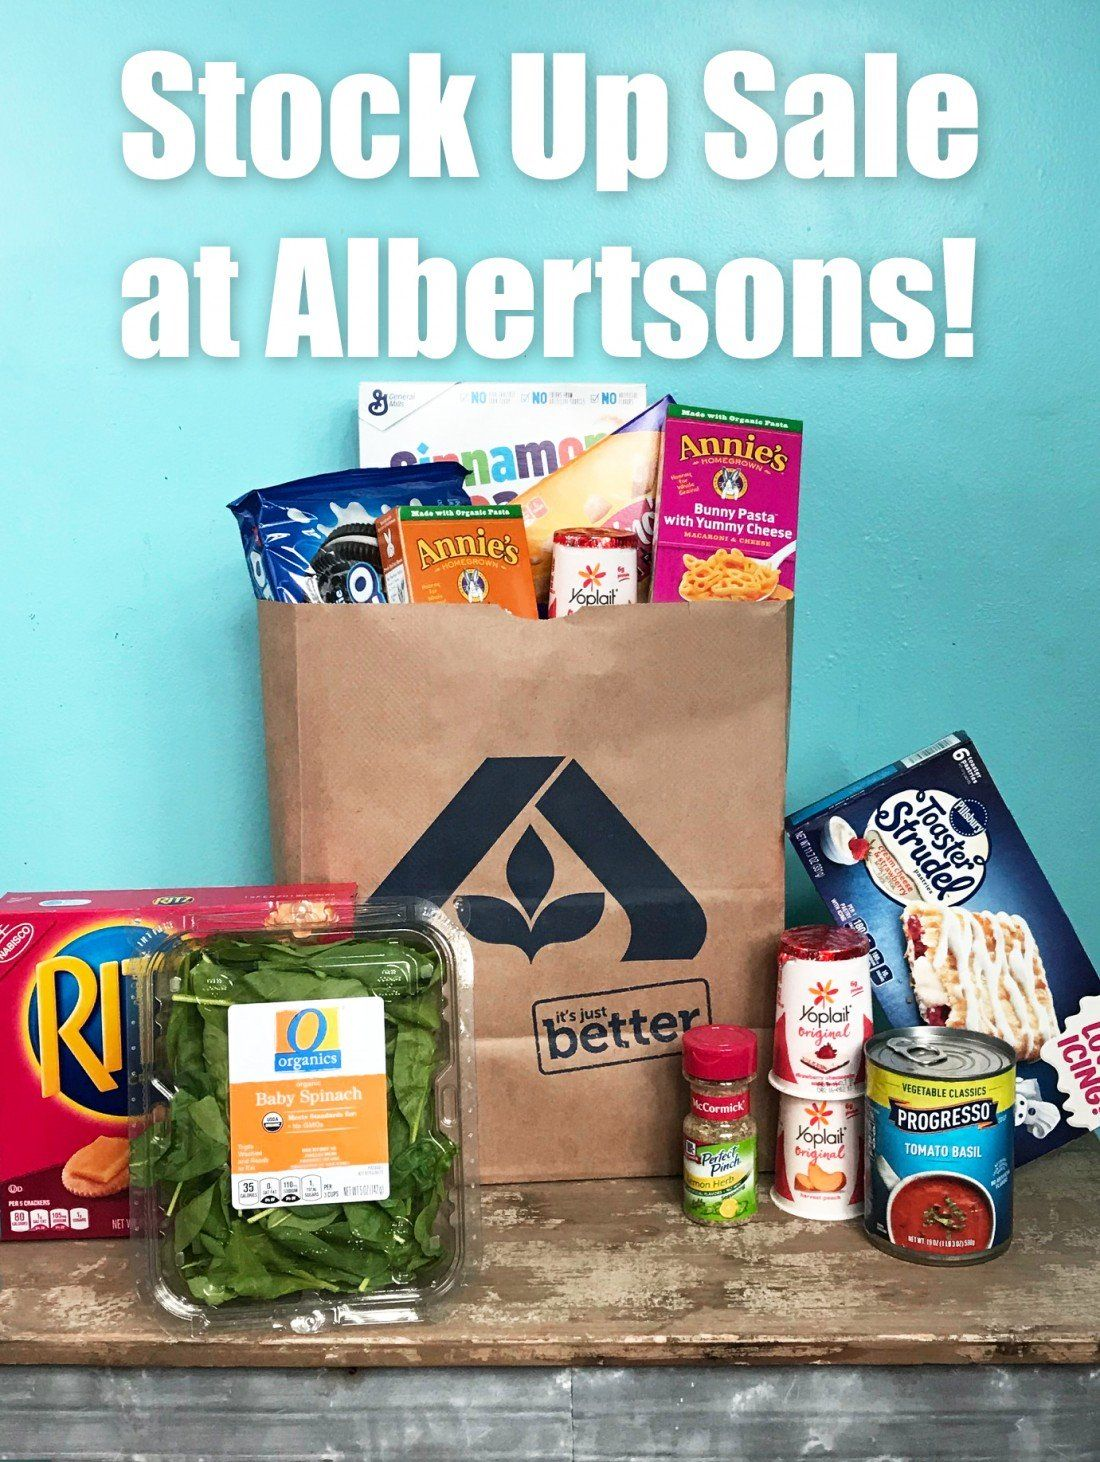 Stock Up Sale at Albertsons! Free groceries, Affordable